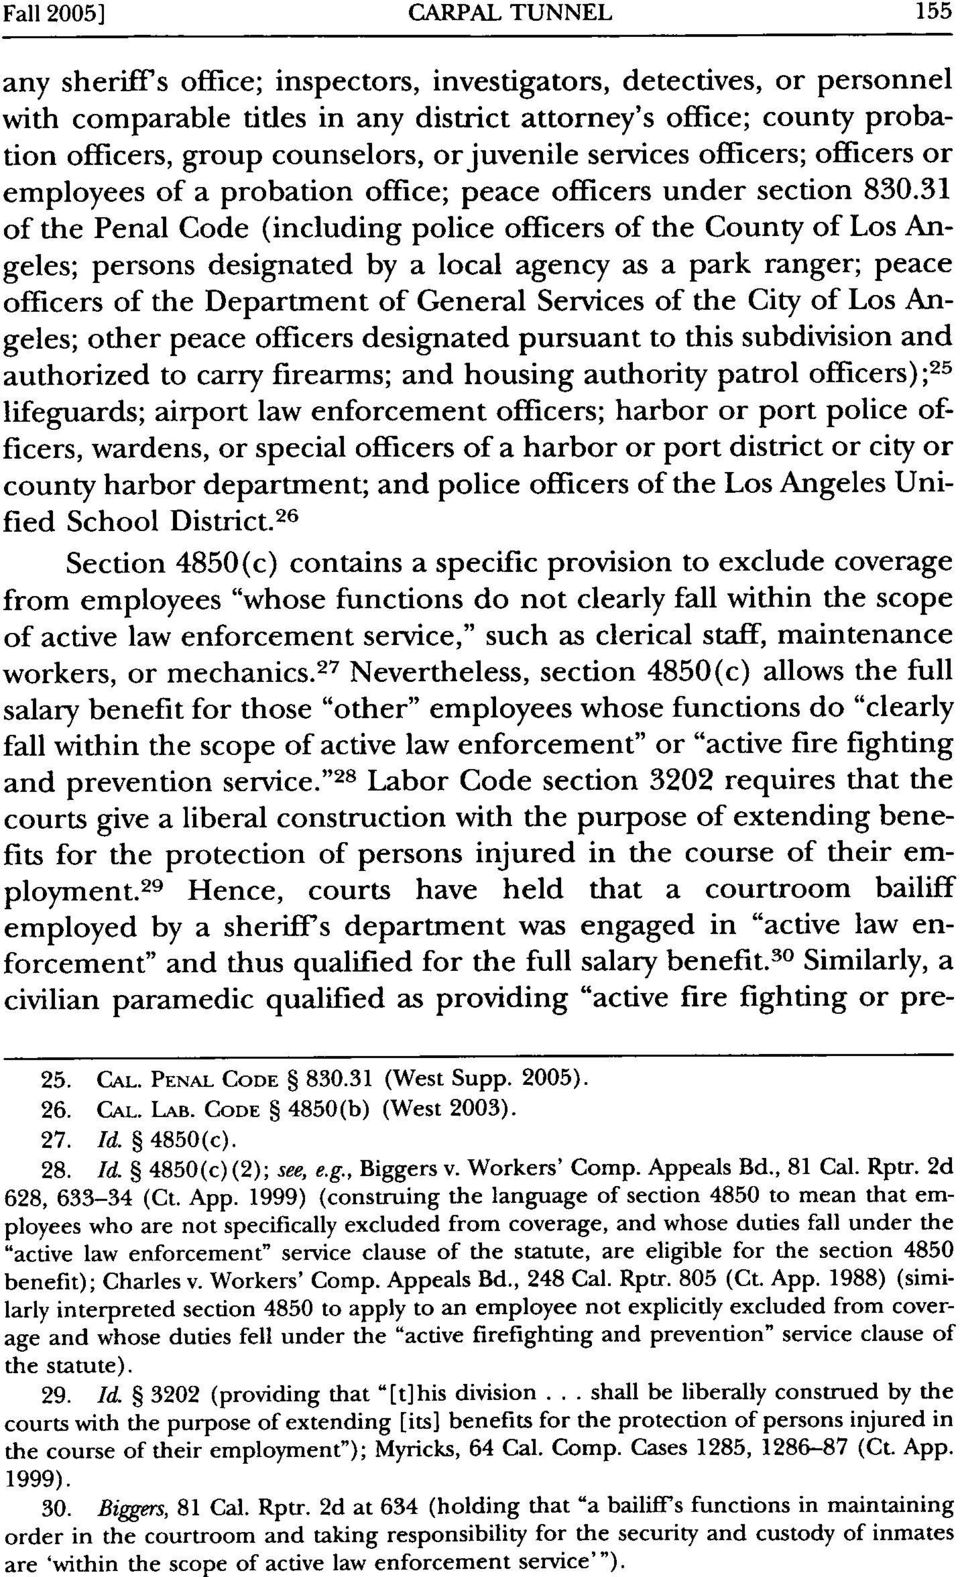 31 of the Penal Code (including police officers of the County of Los Angeles; persons designated by a local agency as a park ranger; peace officers of the Department of General Services of the City